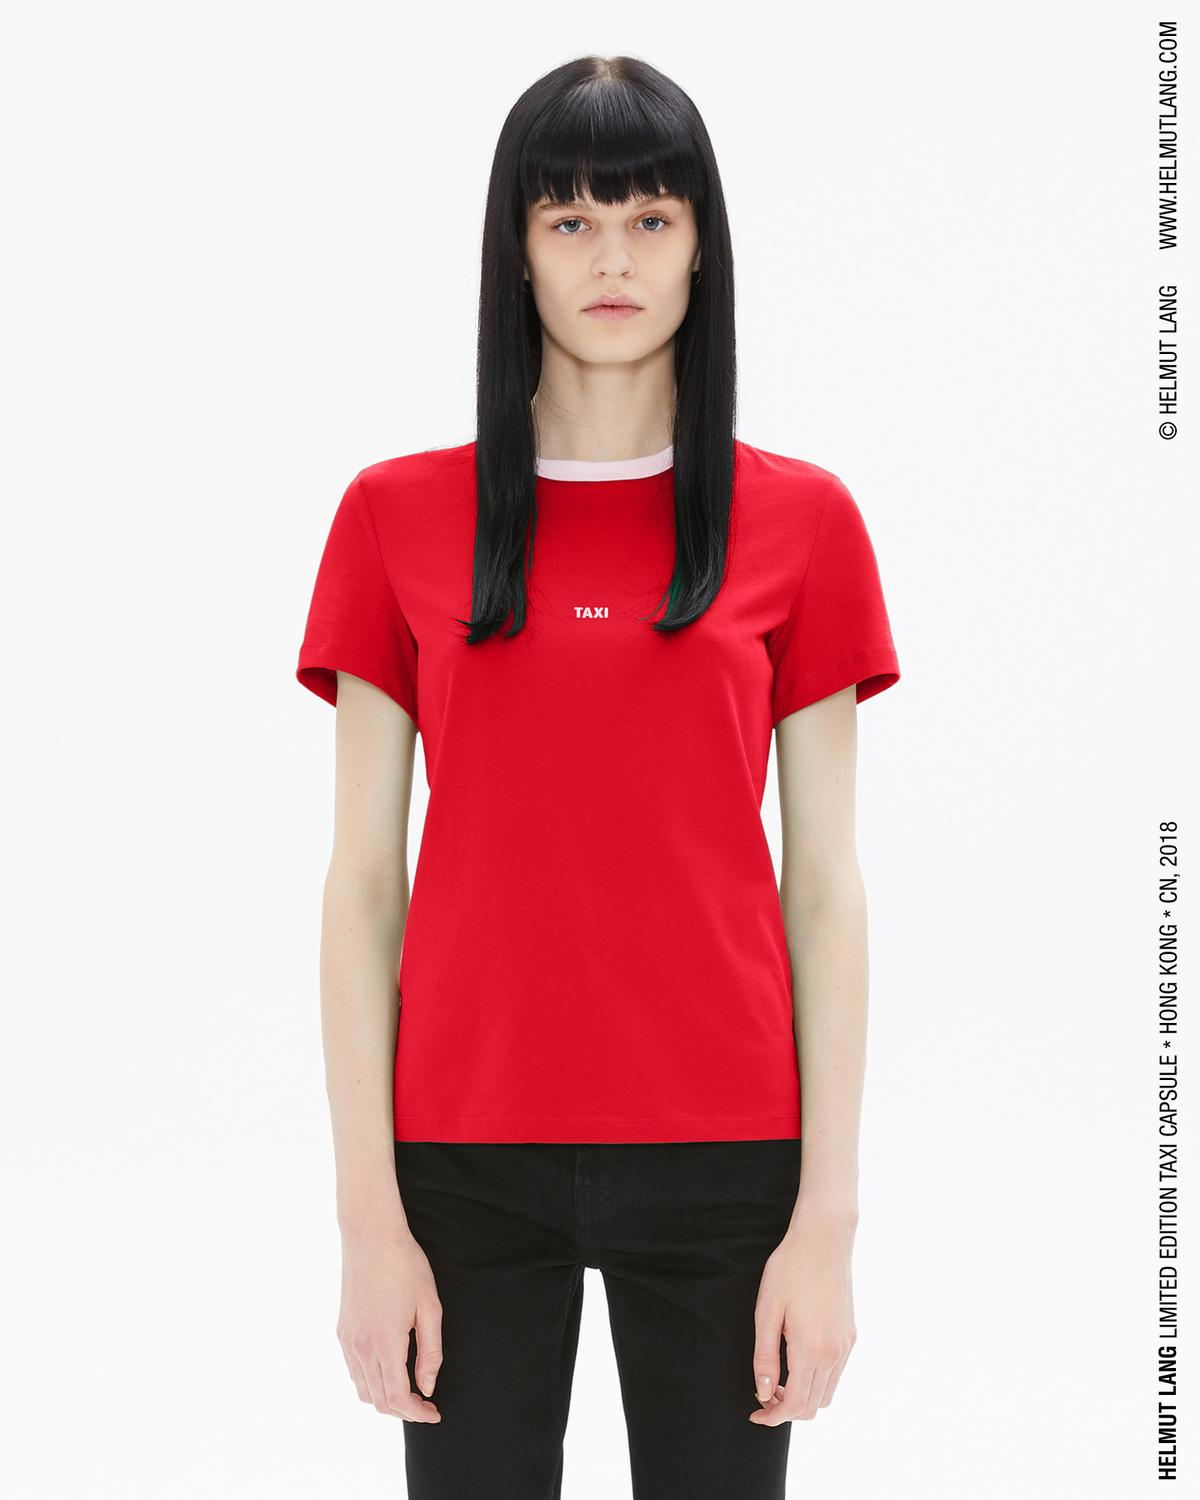 Helmut Lang Hong Kong Taxi Tee - Red/Silver/Grey Outlet Order Online Cheap With Paypal Cheap Sale Shop For Outlet Where To Buy cJ9xeE5o